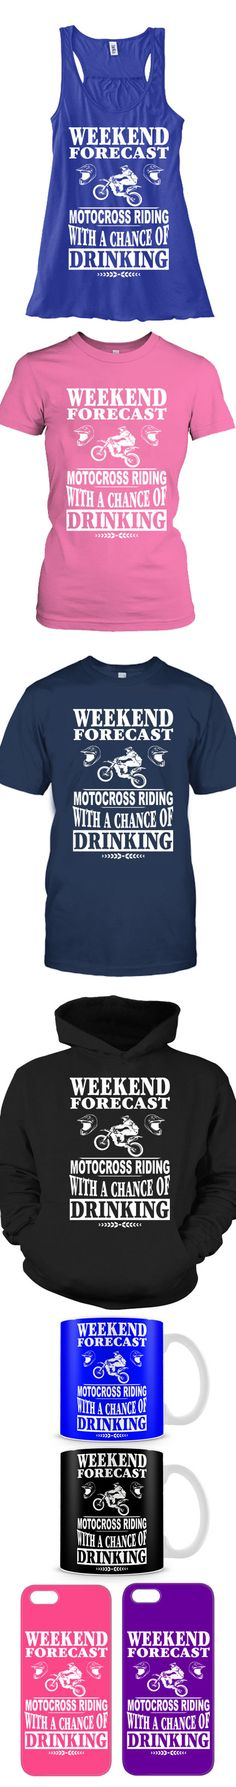 Love Motocross? Then Click The Image To Buy It Now or Tag Someone You Want To Buy This For.